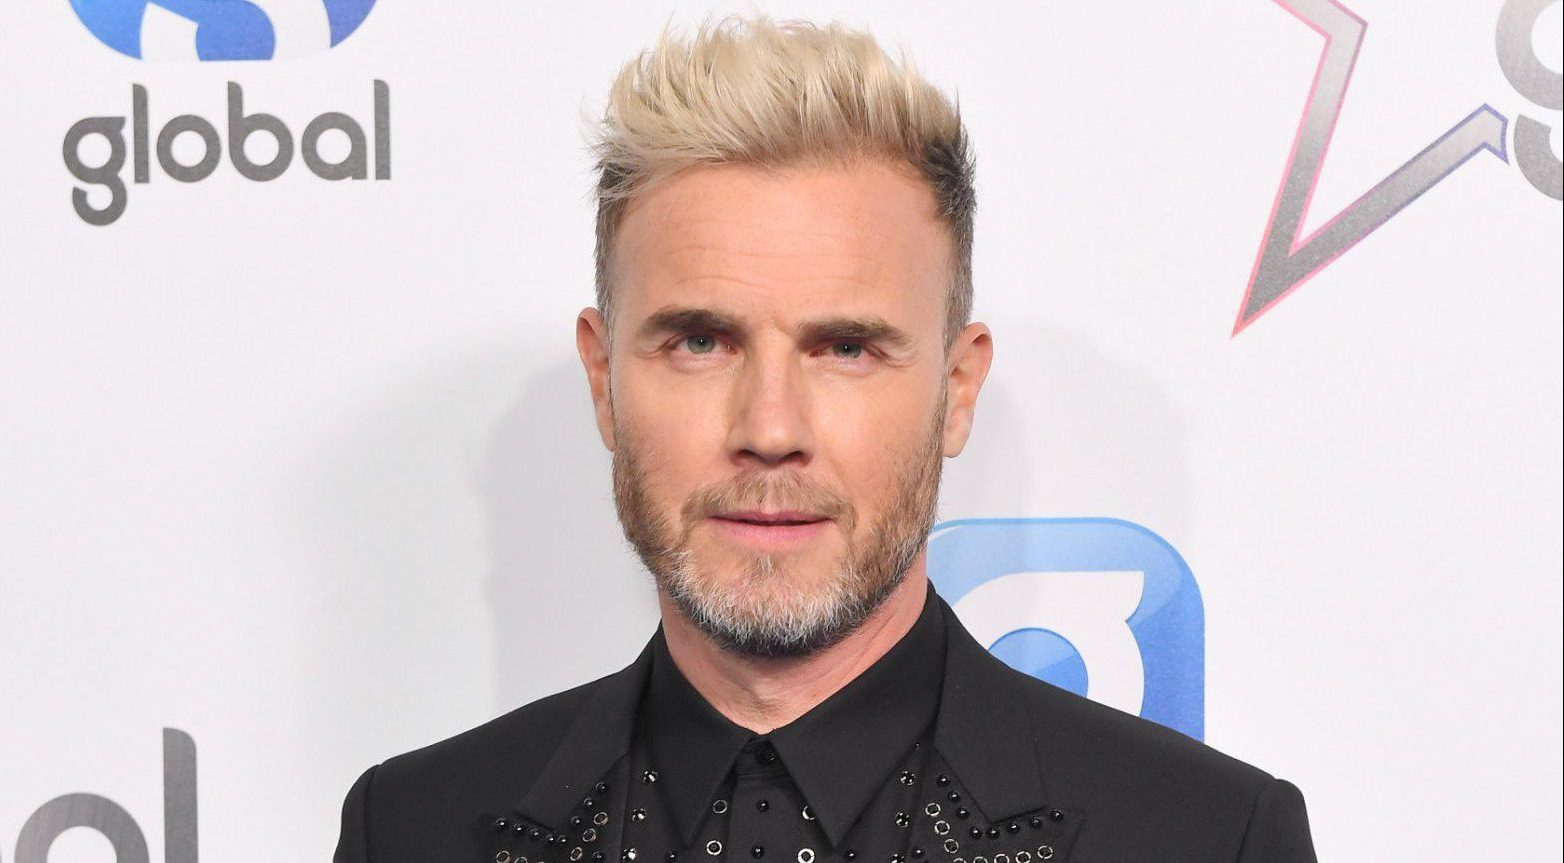 Gary Barlow won't take the Tube after terrifying 7/7 bombings